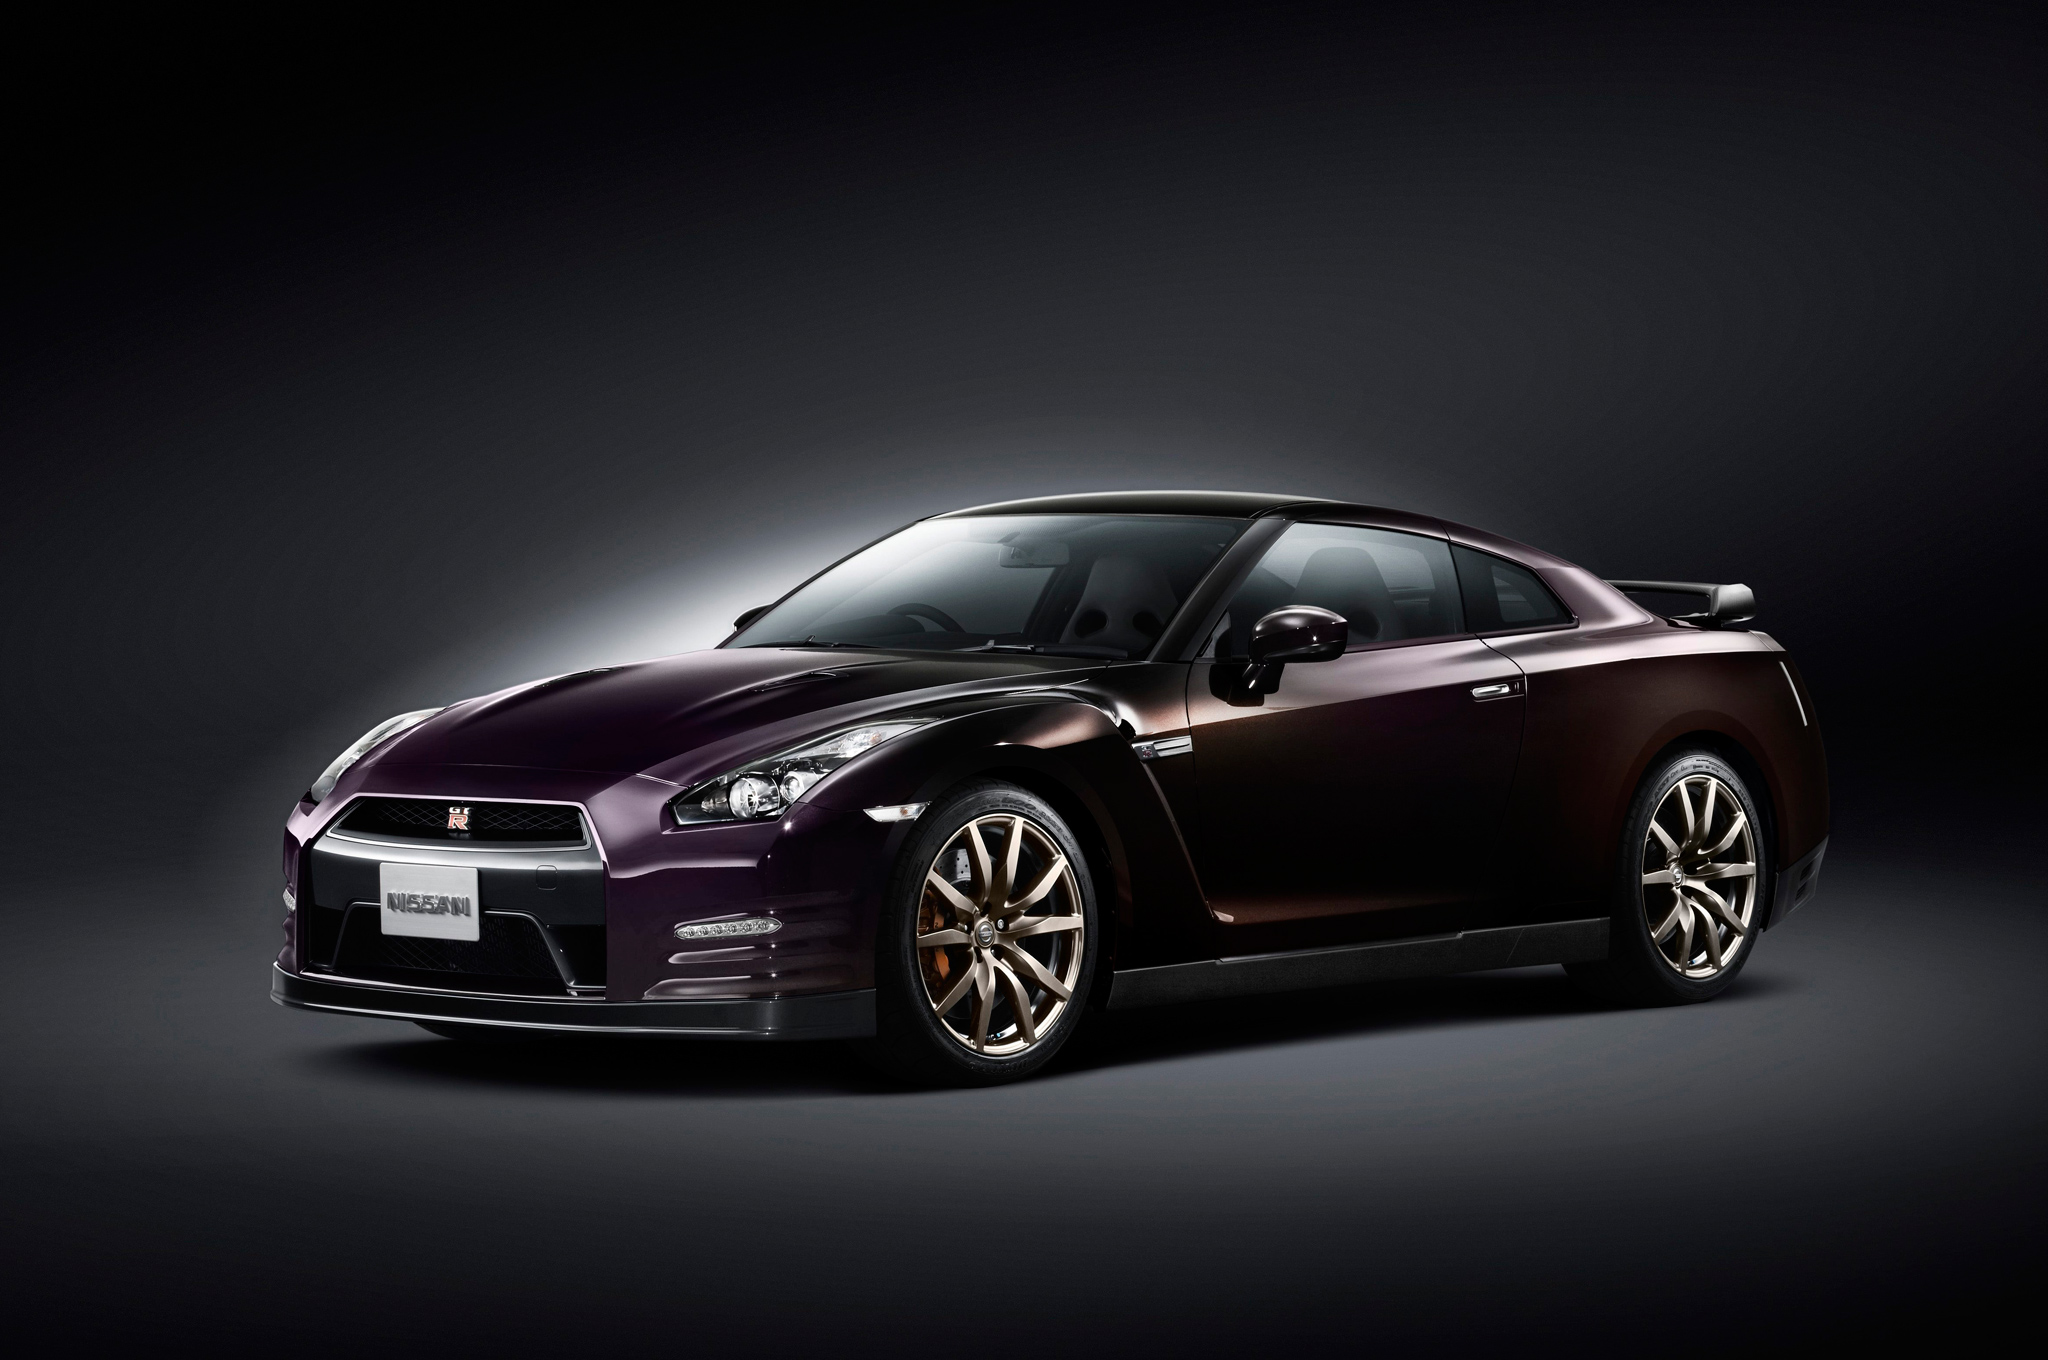 Nissan GT-R Special Edition Gets Exclusive Paint, Costs $106,590